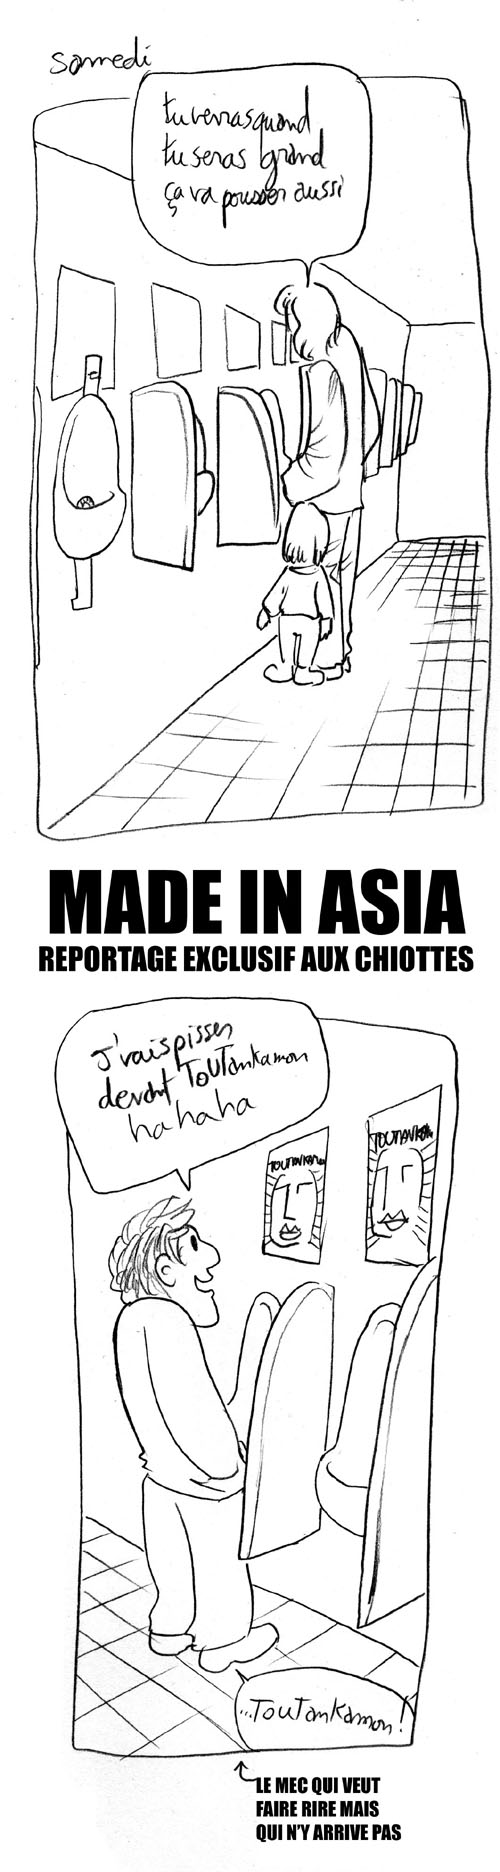 made in asia aux chiottes